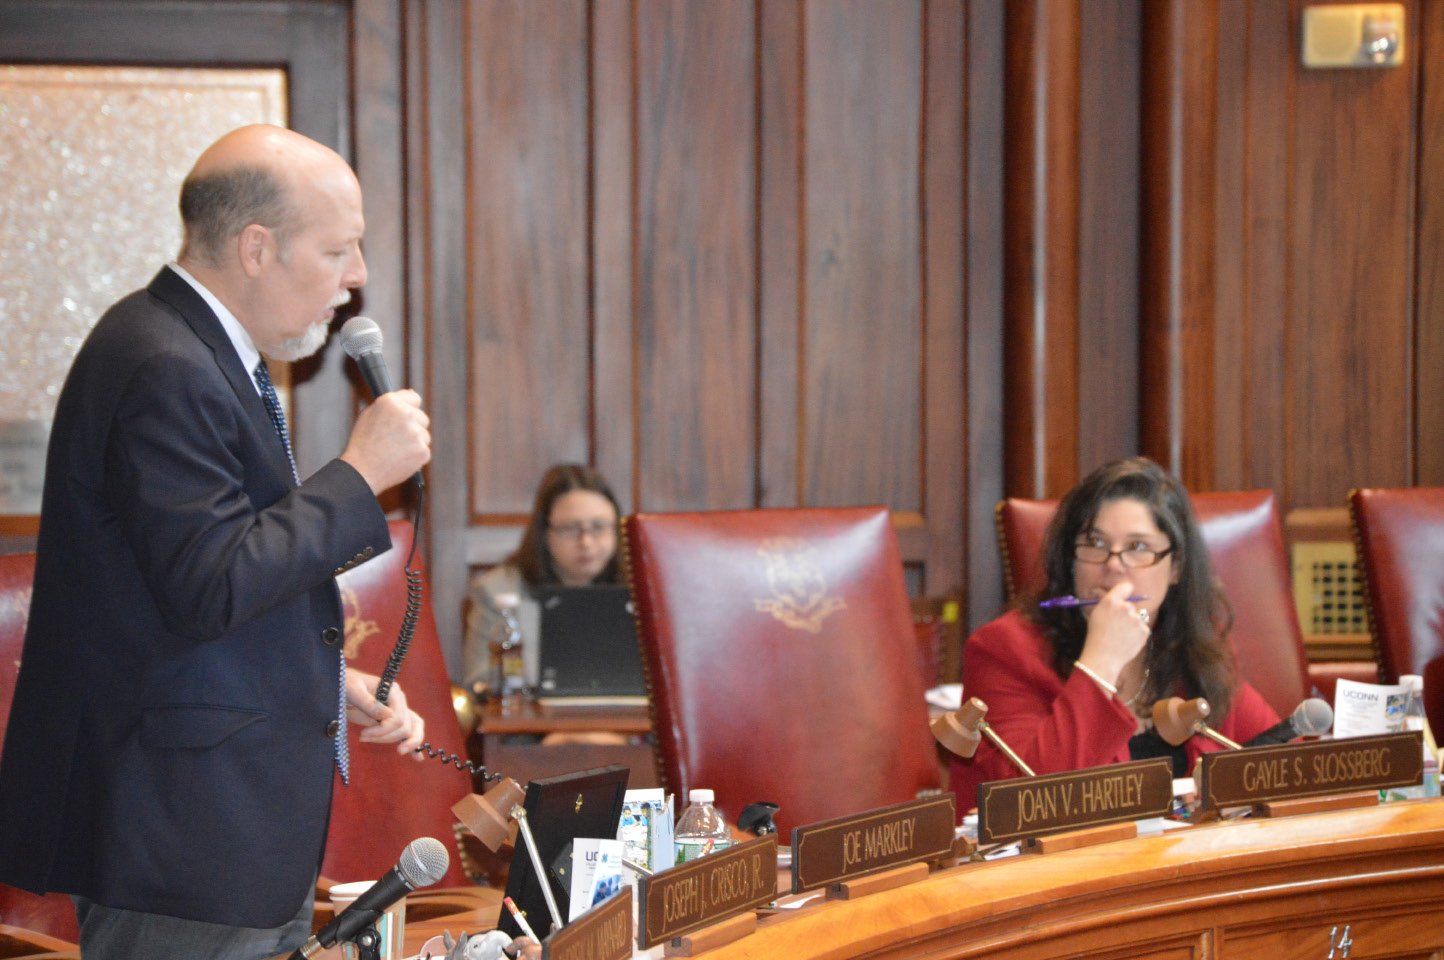 FILE PHOTO: State Sen. Joe Markley, R-Southington, discusses the budget during a special session held by the Senate on Thursday. State Sen. Dante Bartolomeo, D-Meriden, is pictured in the background. | Mike Savino/Record-Journal